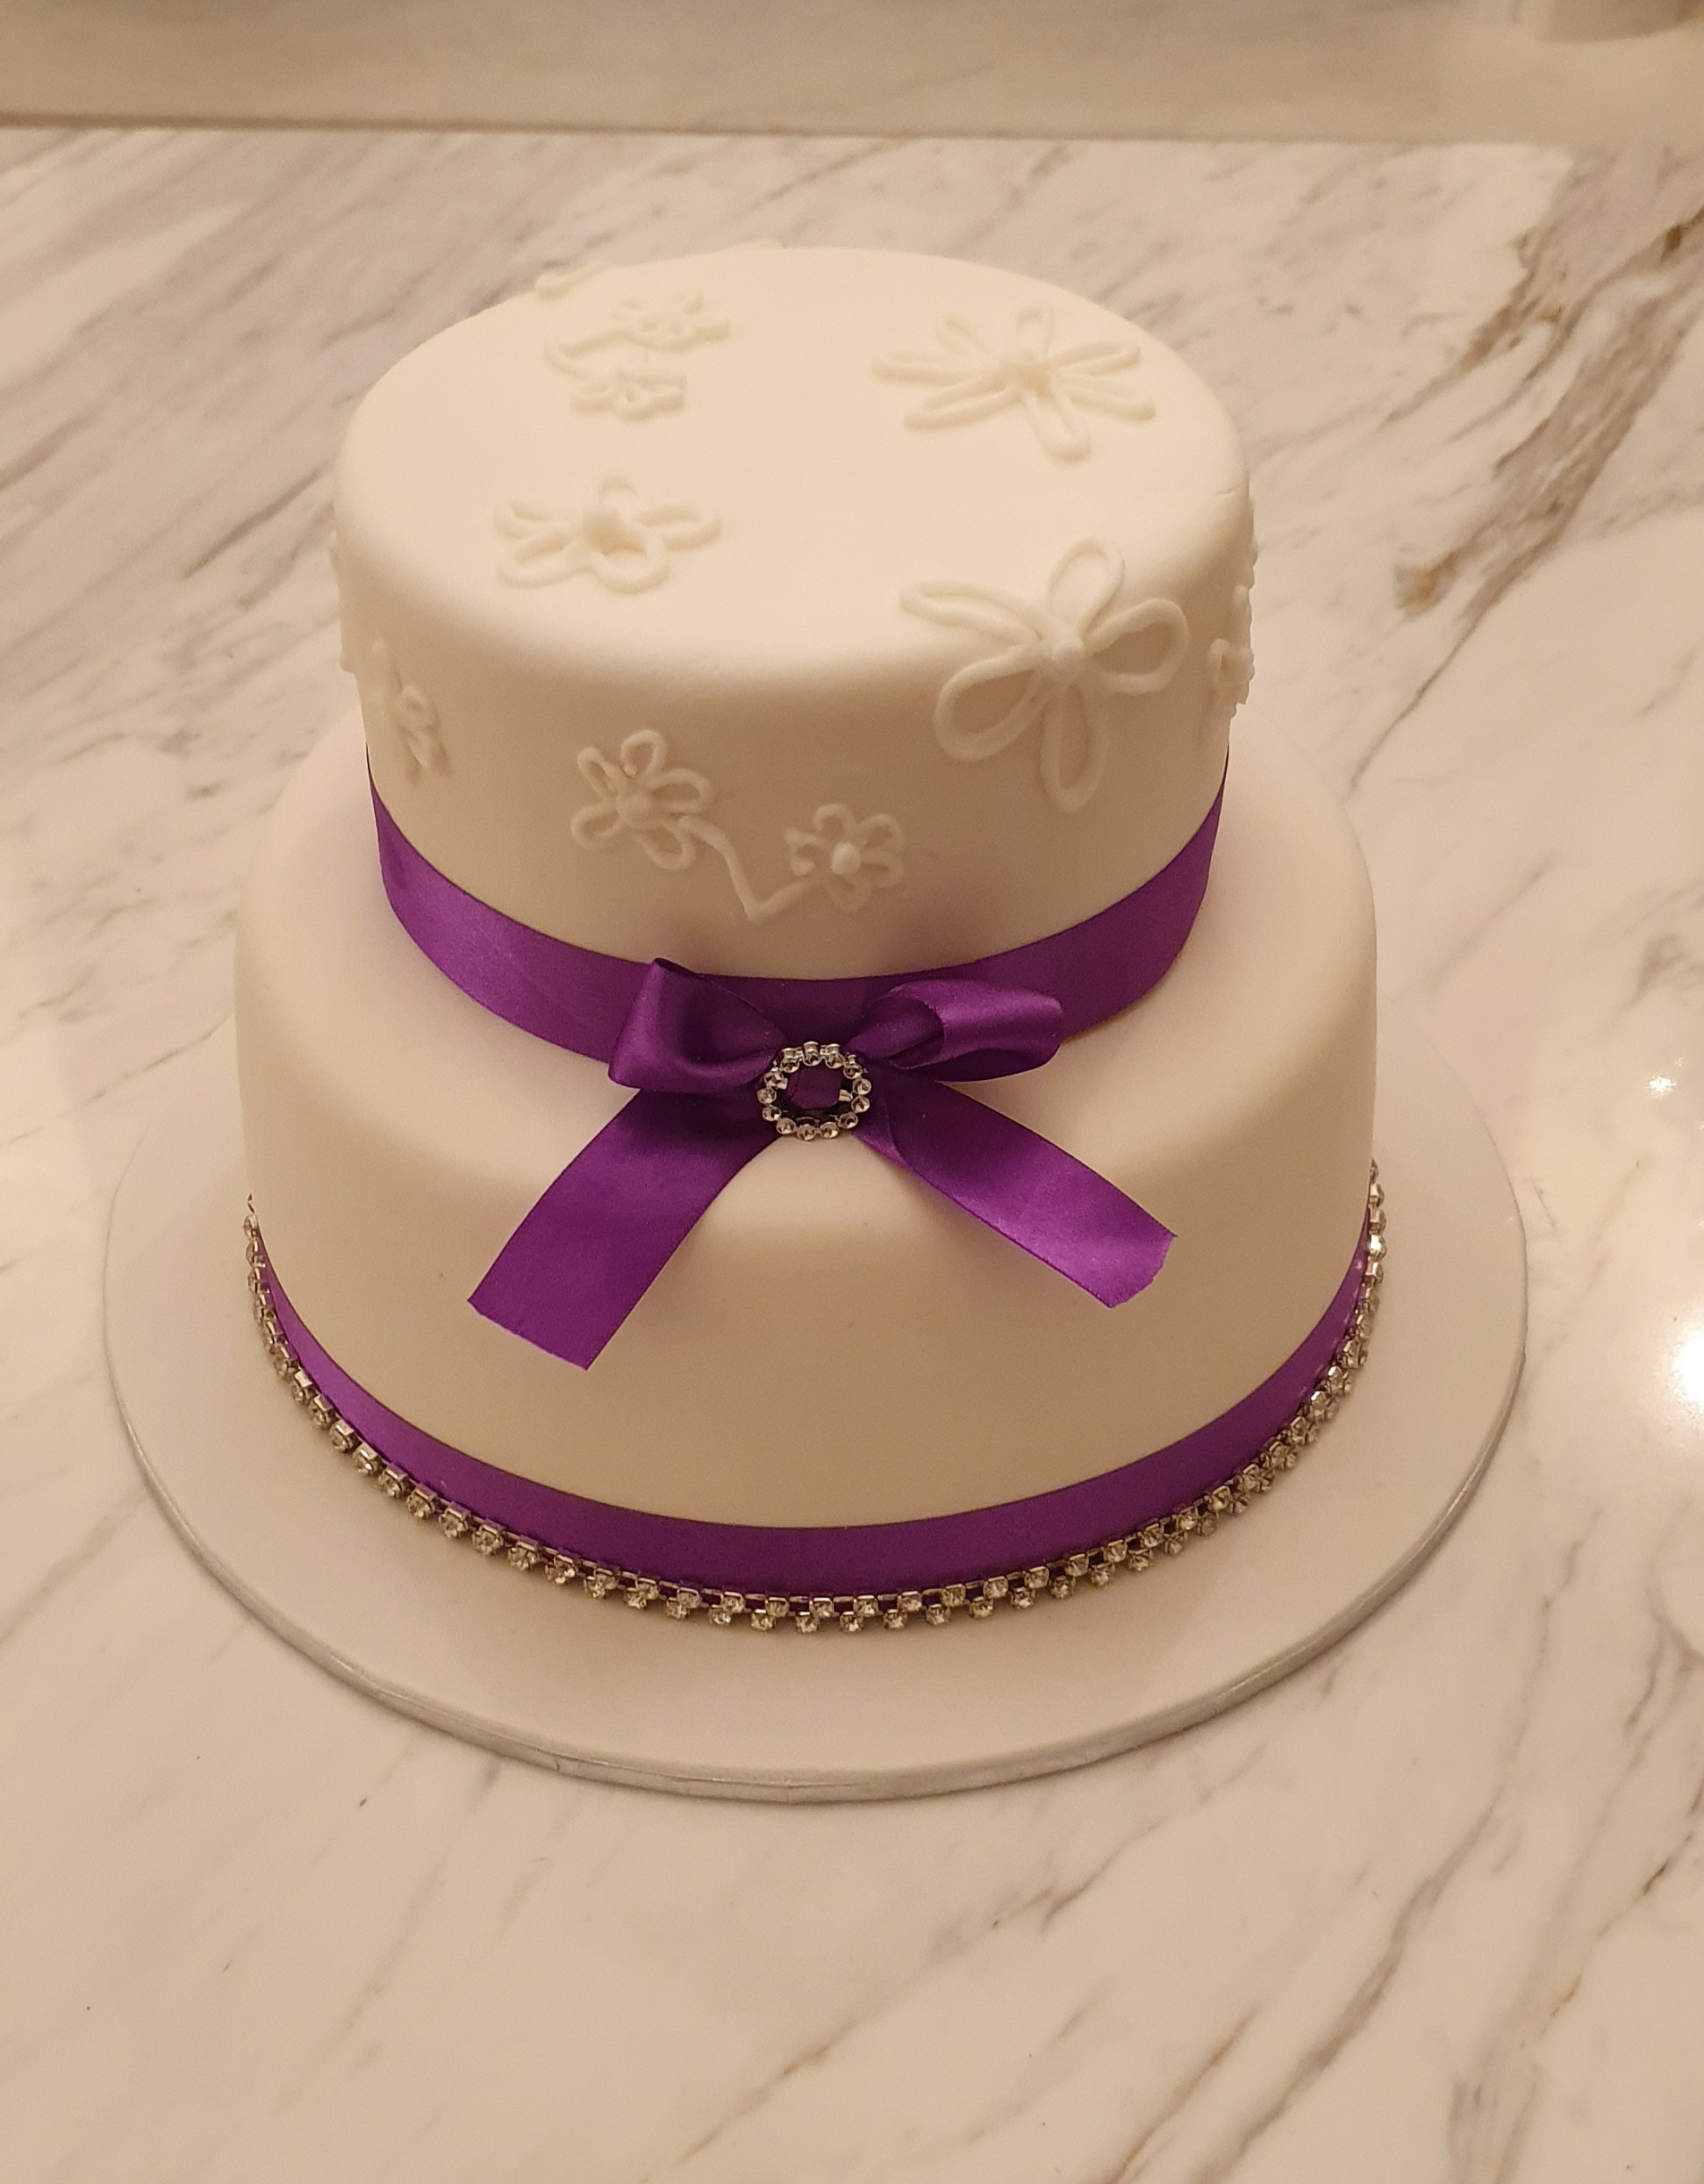 2 tier simple wedding cake from $490